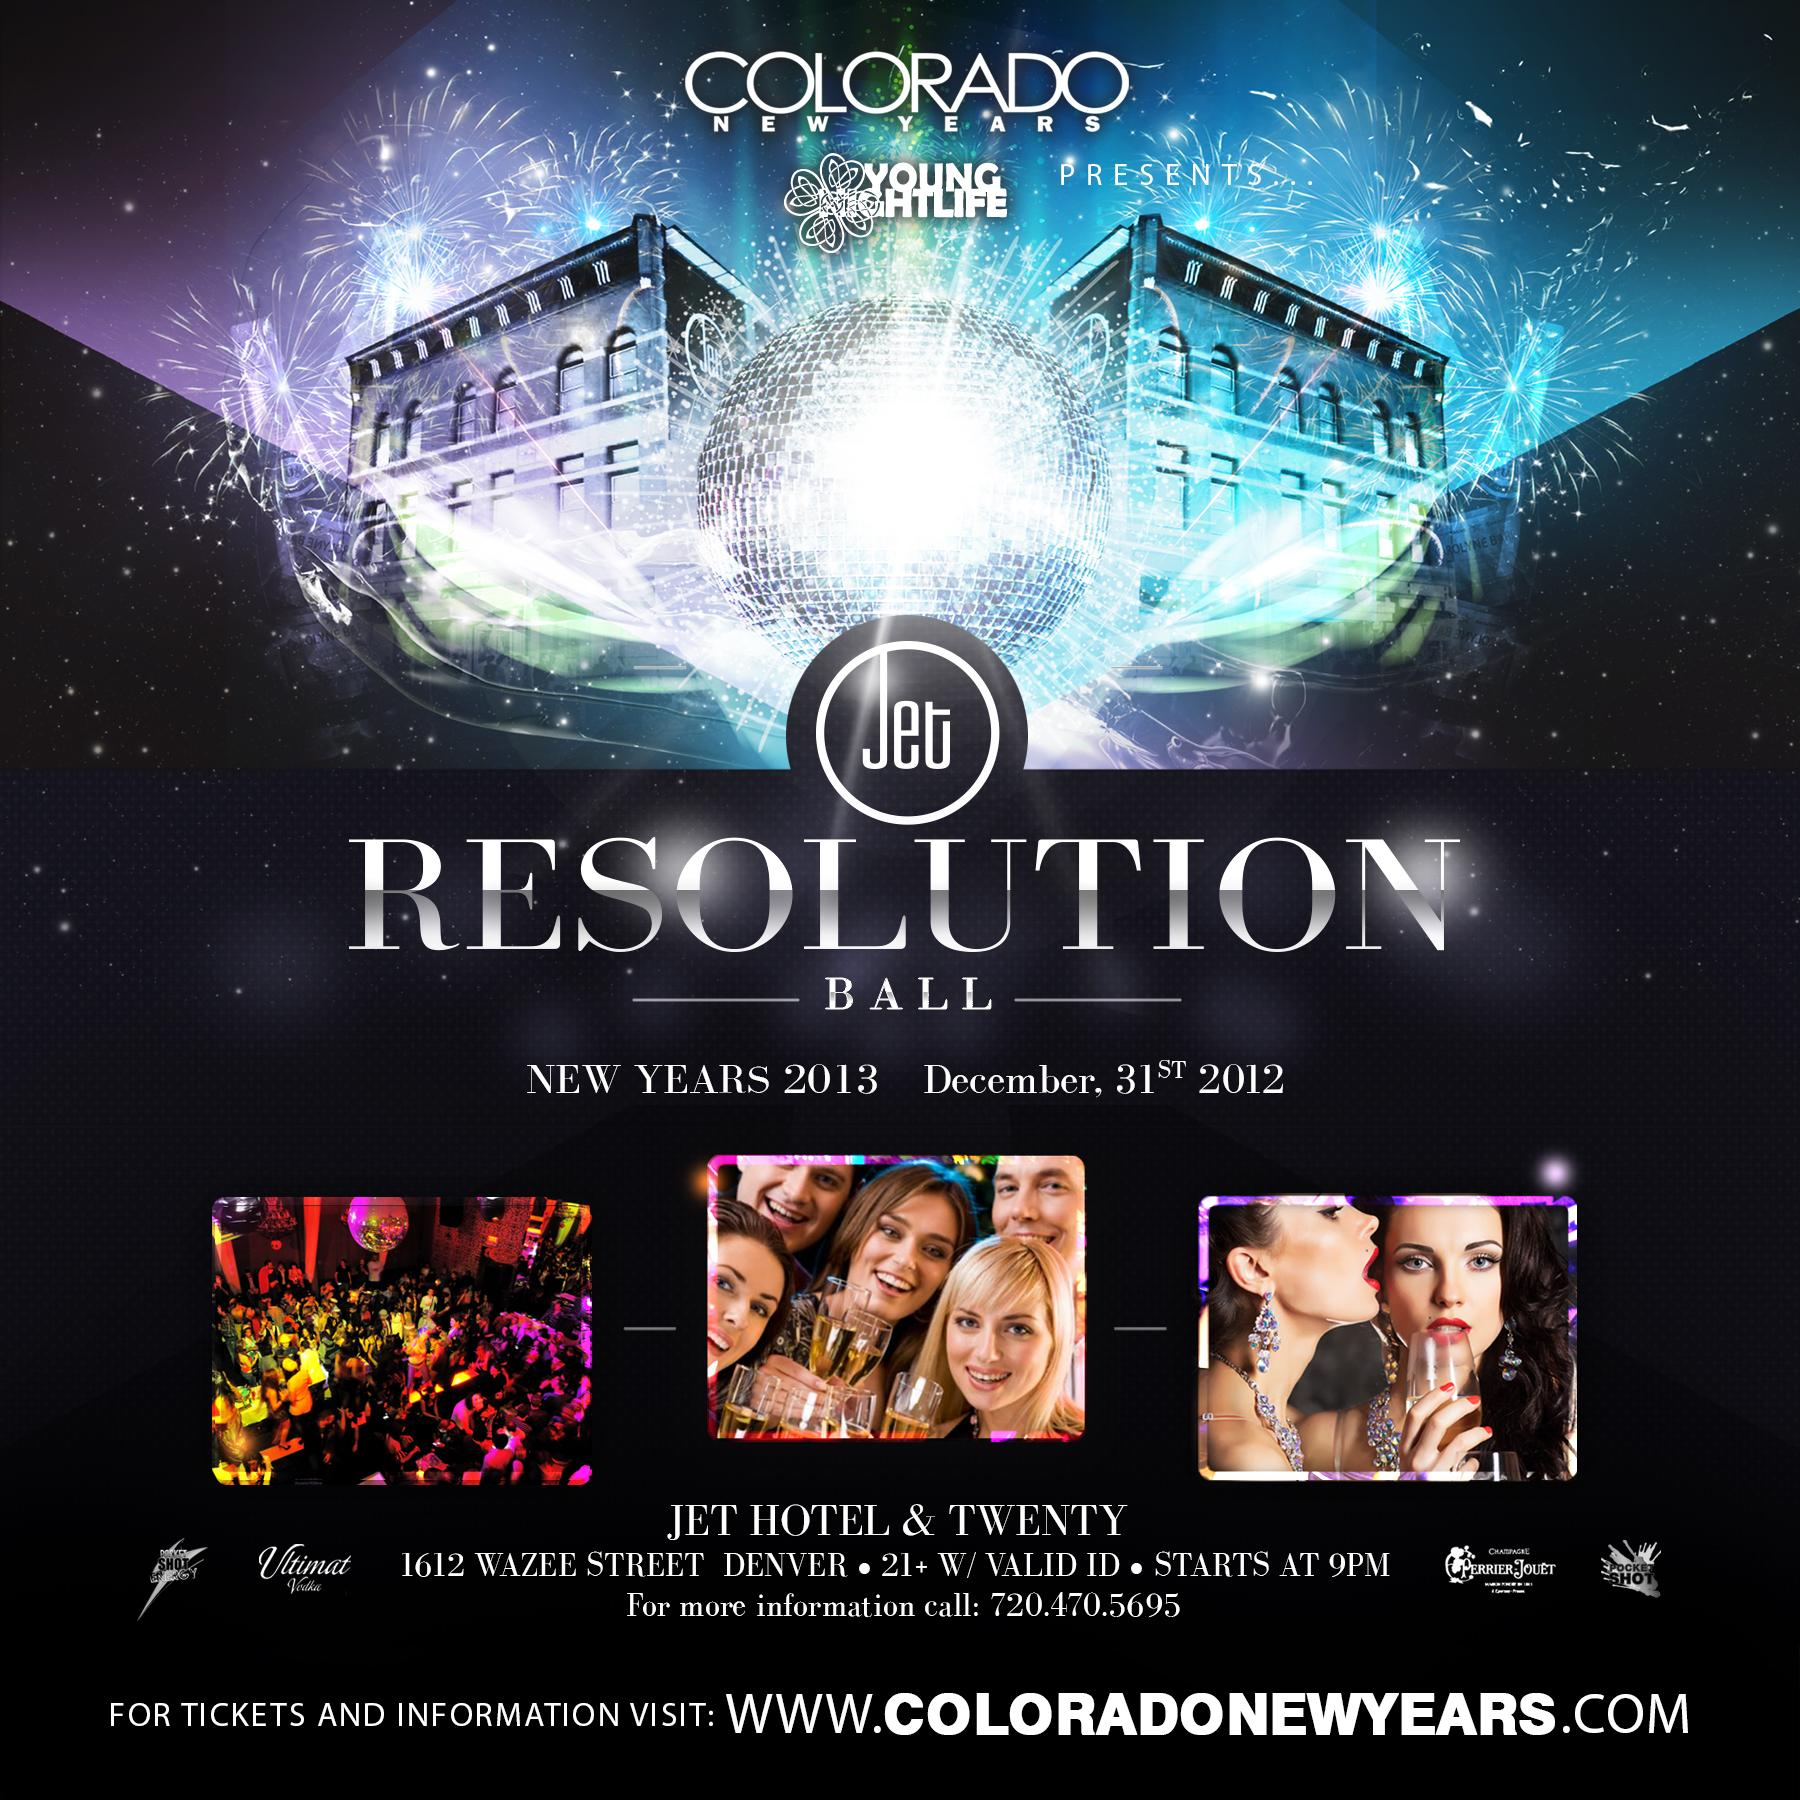 Resolution Ball New Years Eve Tickets - The Jet Hotel on ...